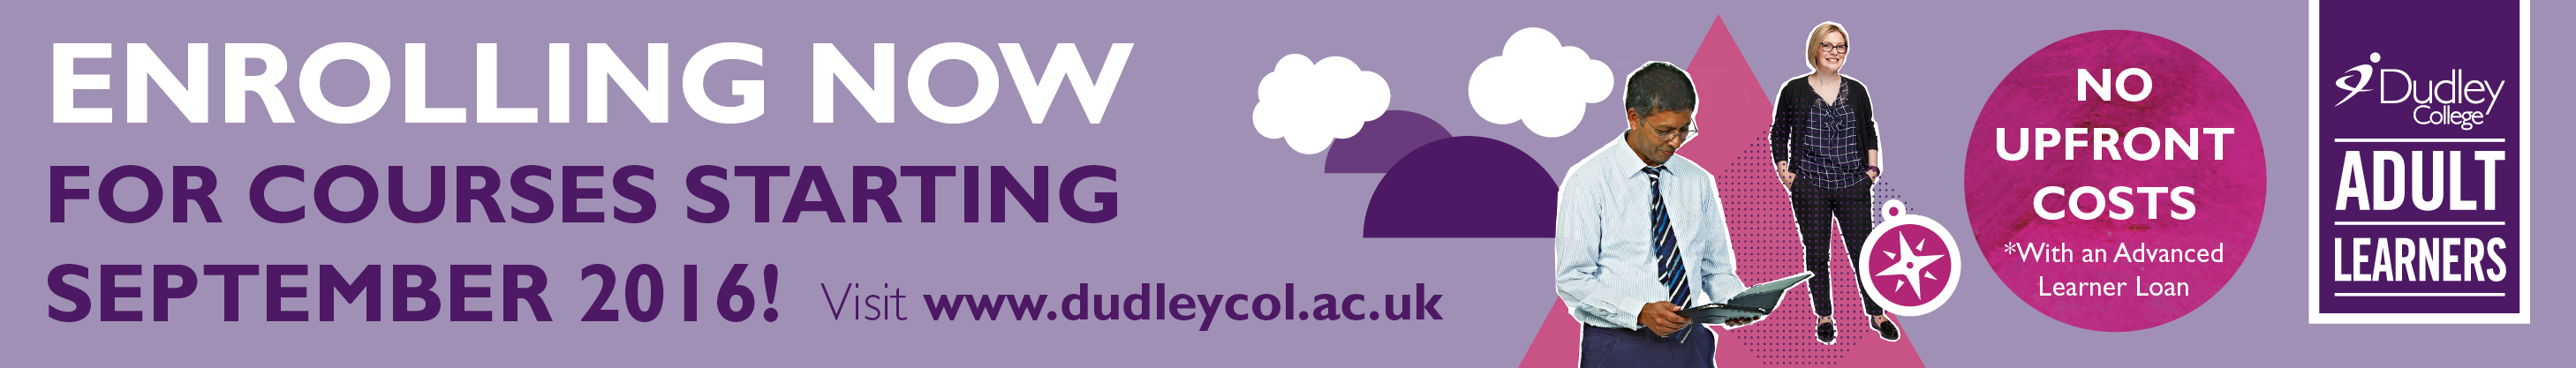 Dudley College 2